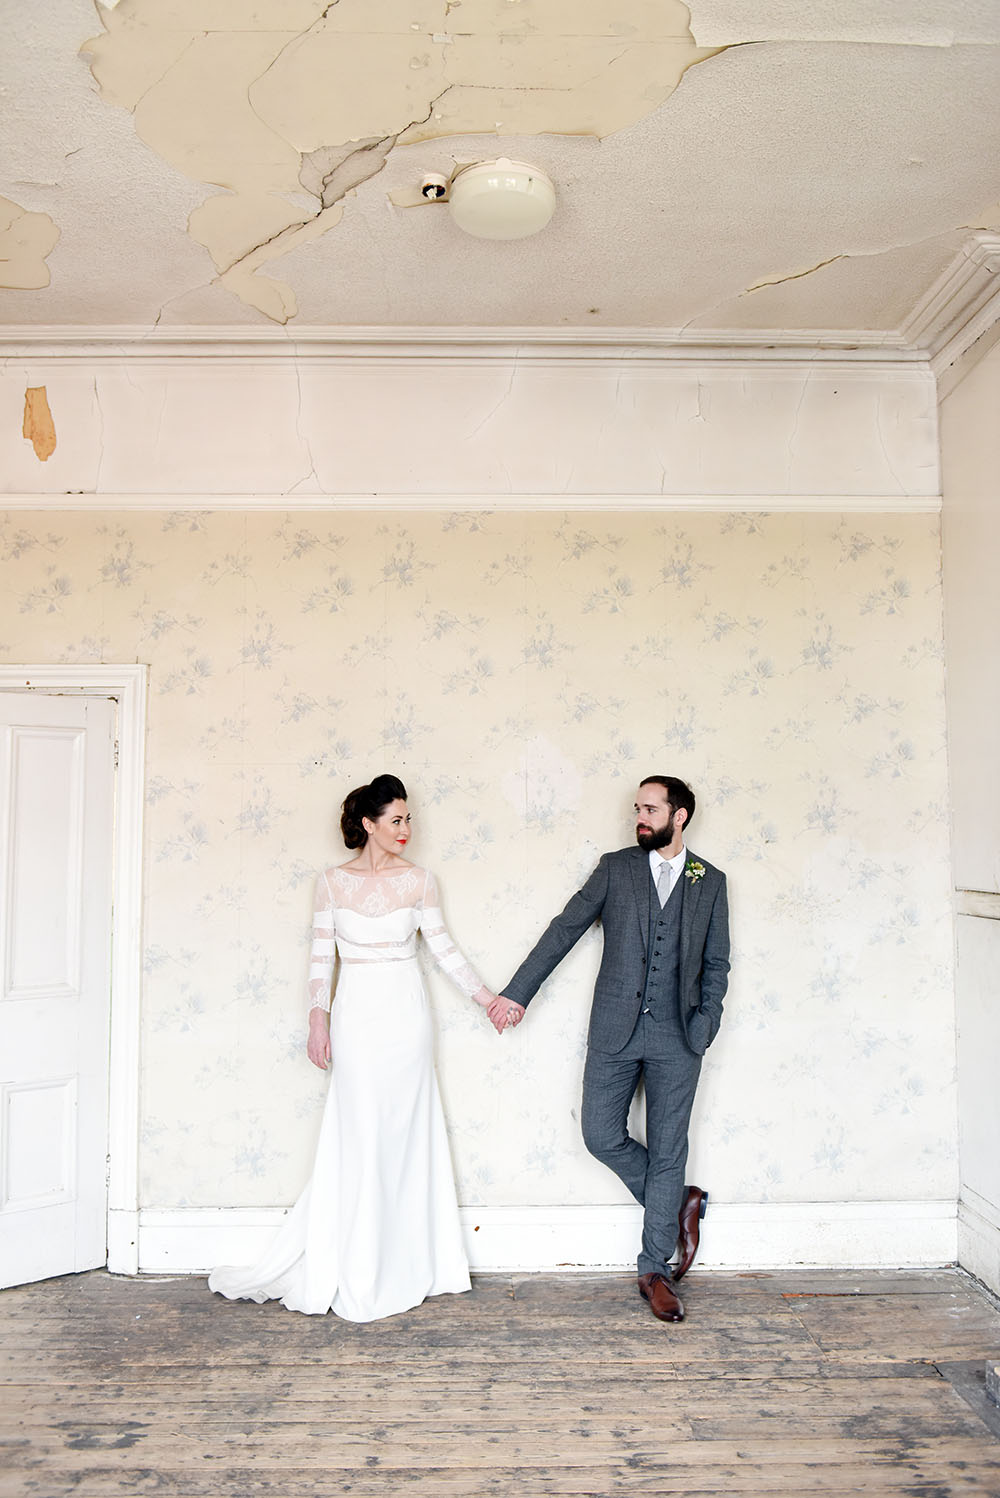 Wedding in a Disused Victorian Swimming Pool · Rock n Roll Bride